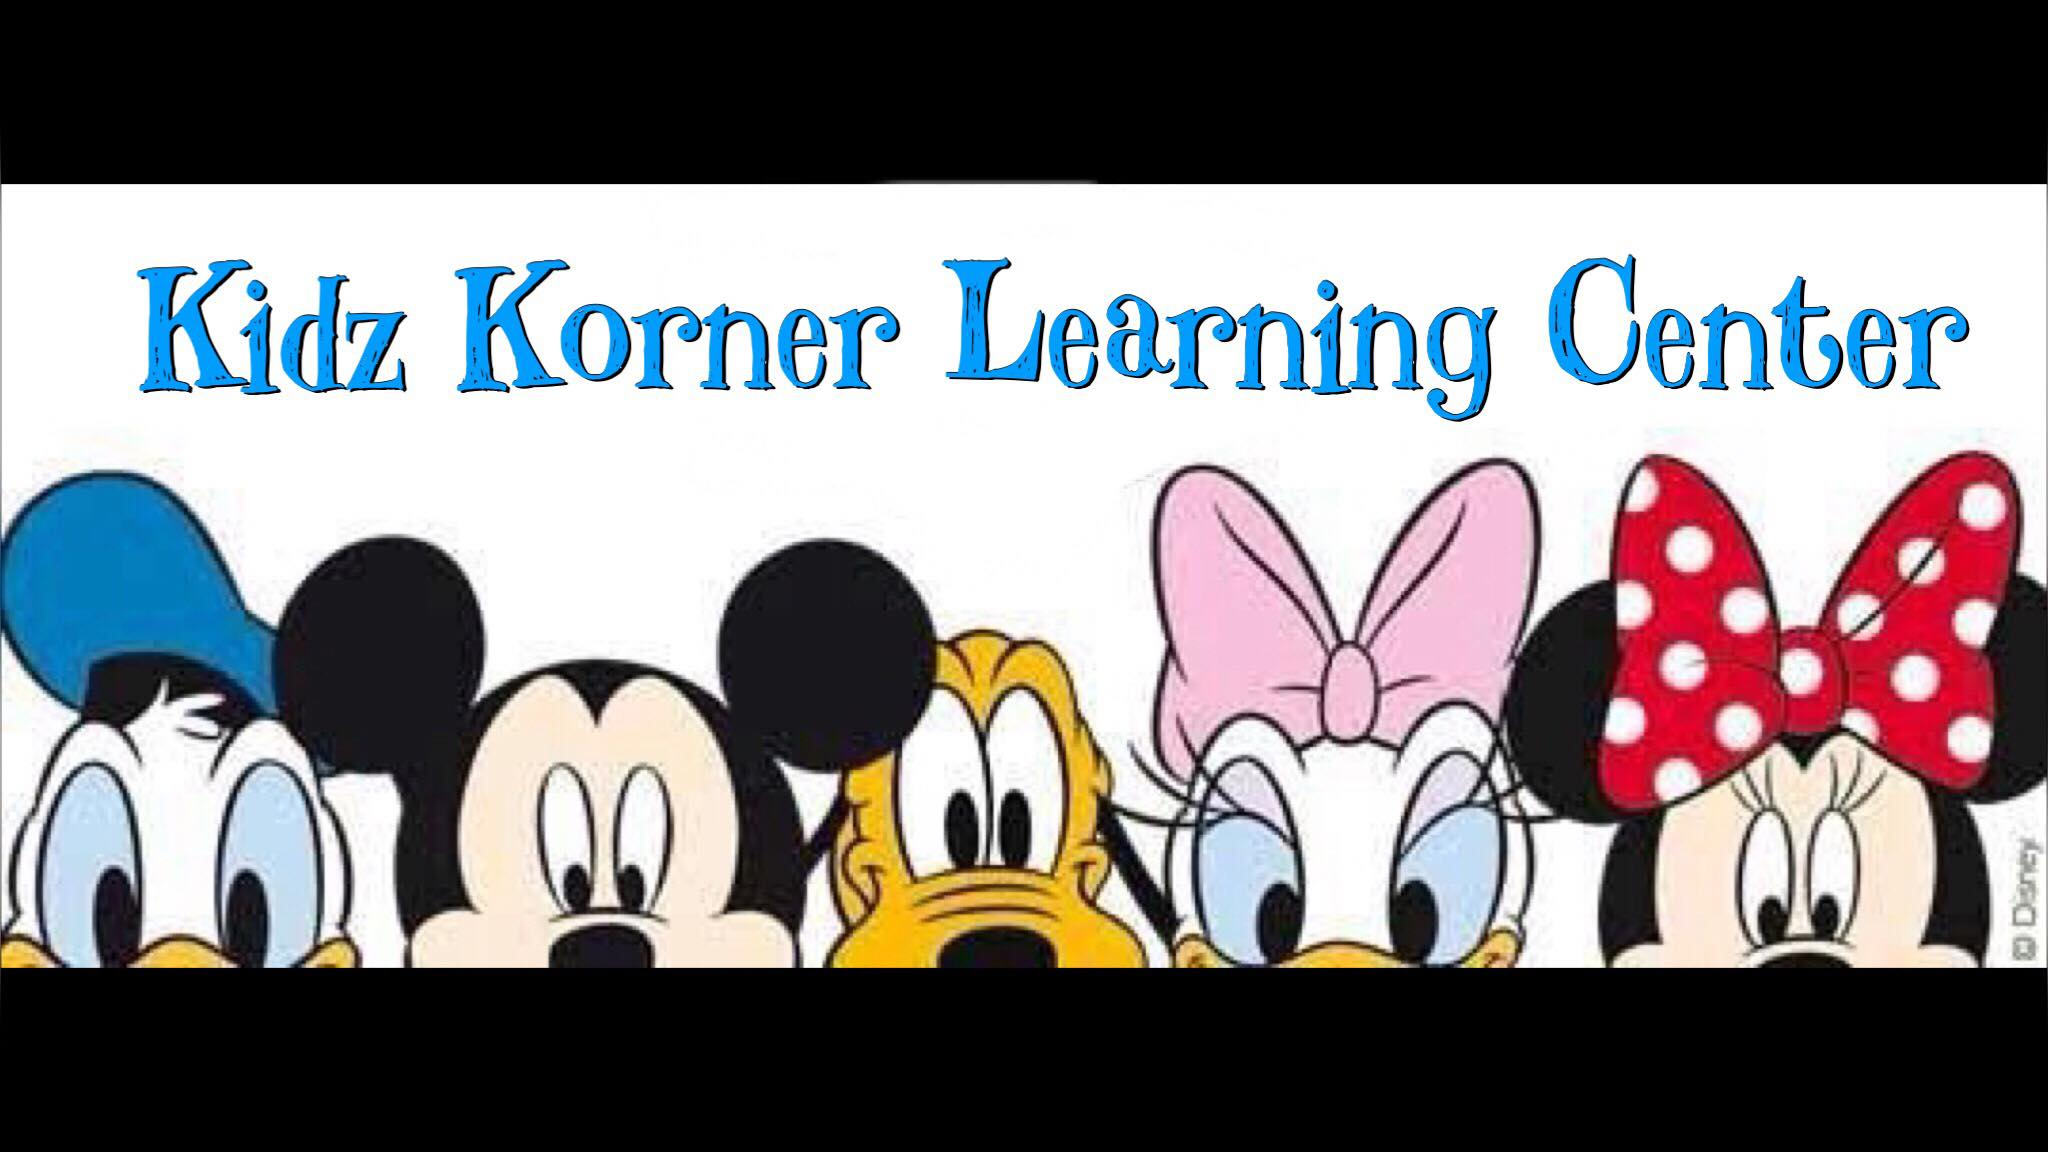 Kidz Korner Learning Center